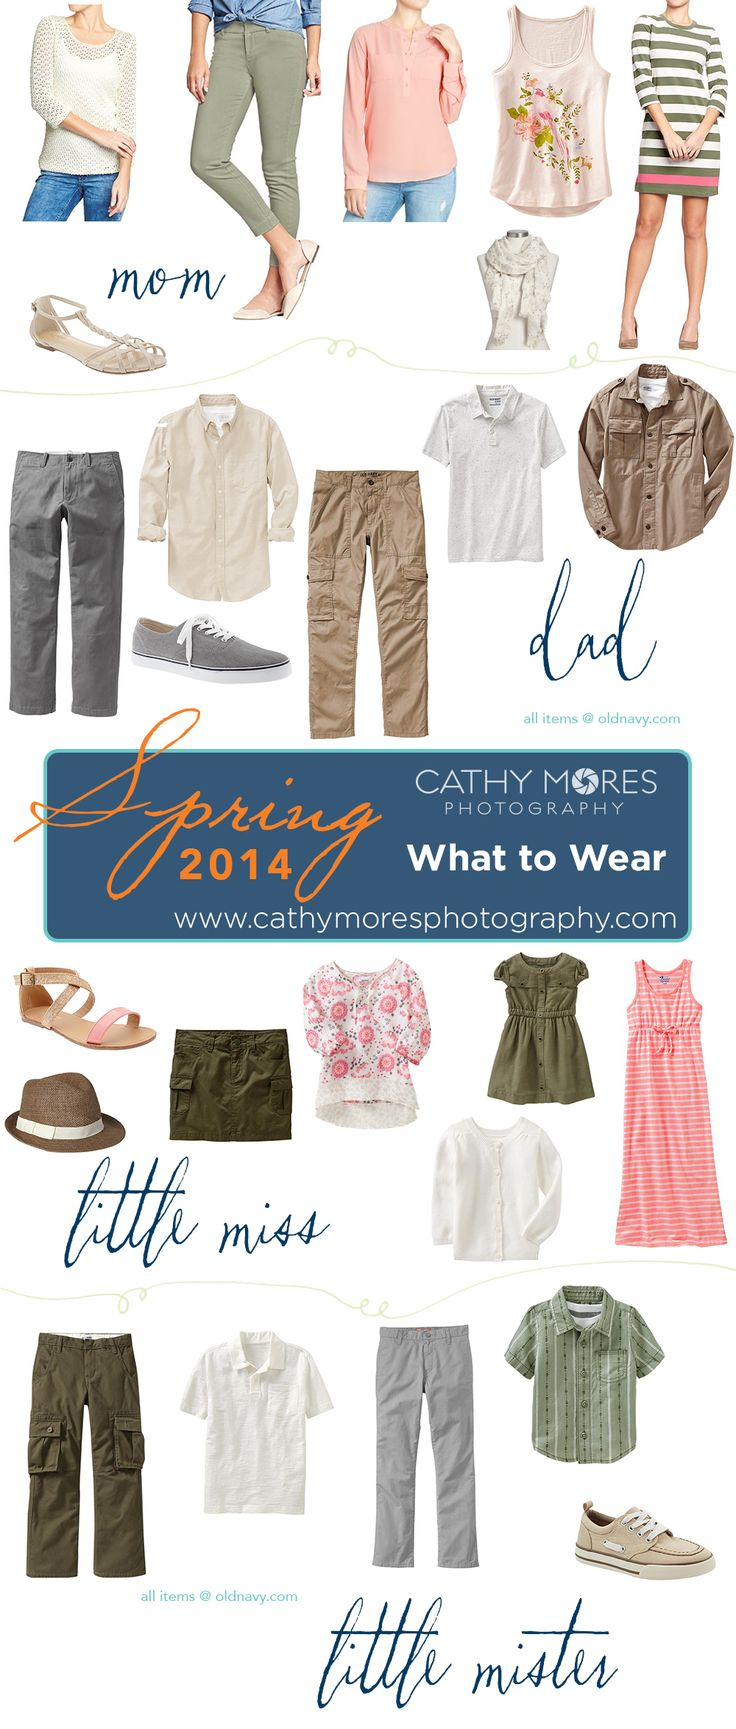 Family portrait outfit ideas for spring - Cathy Mores Photography